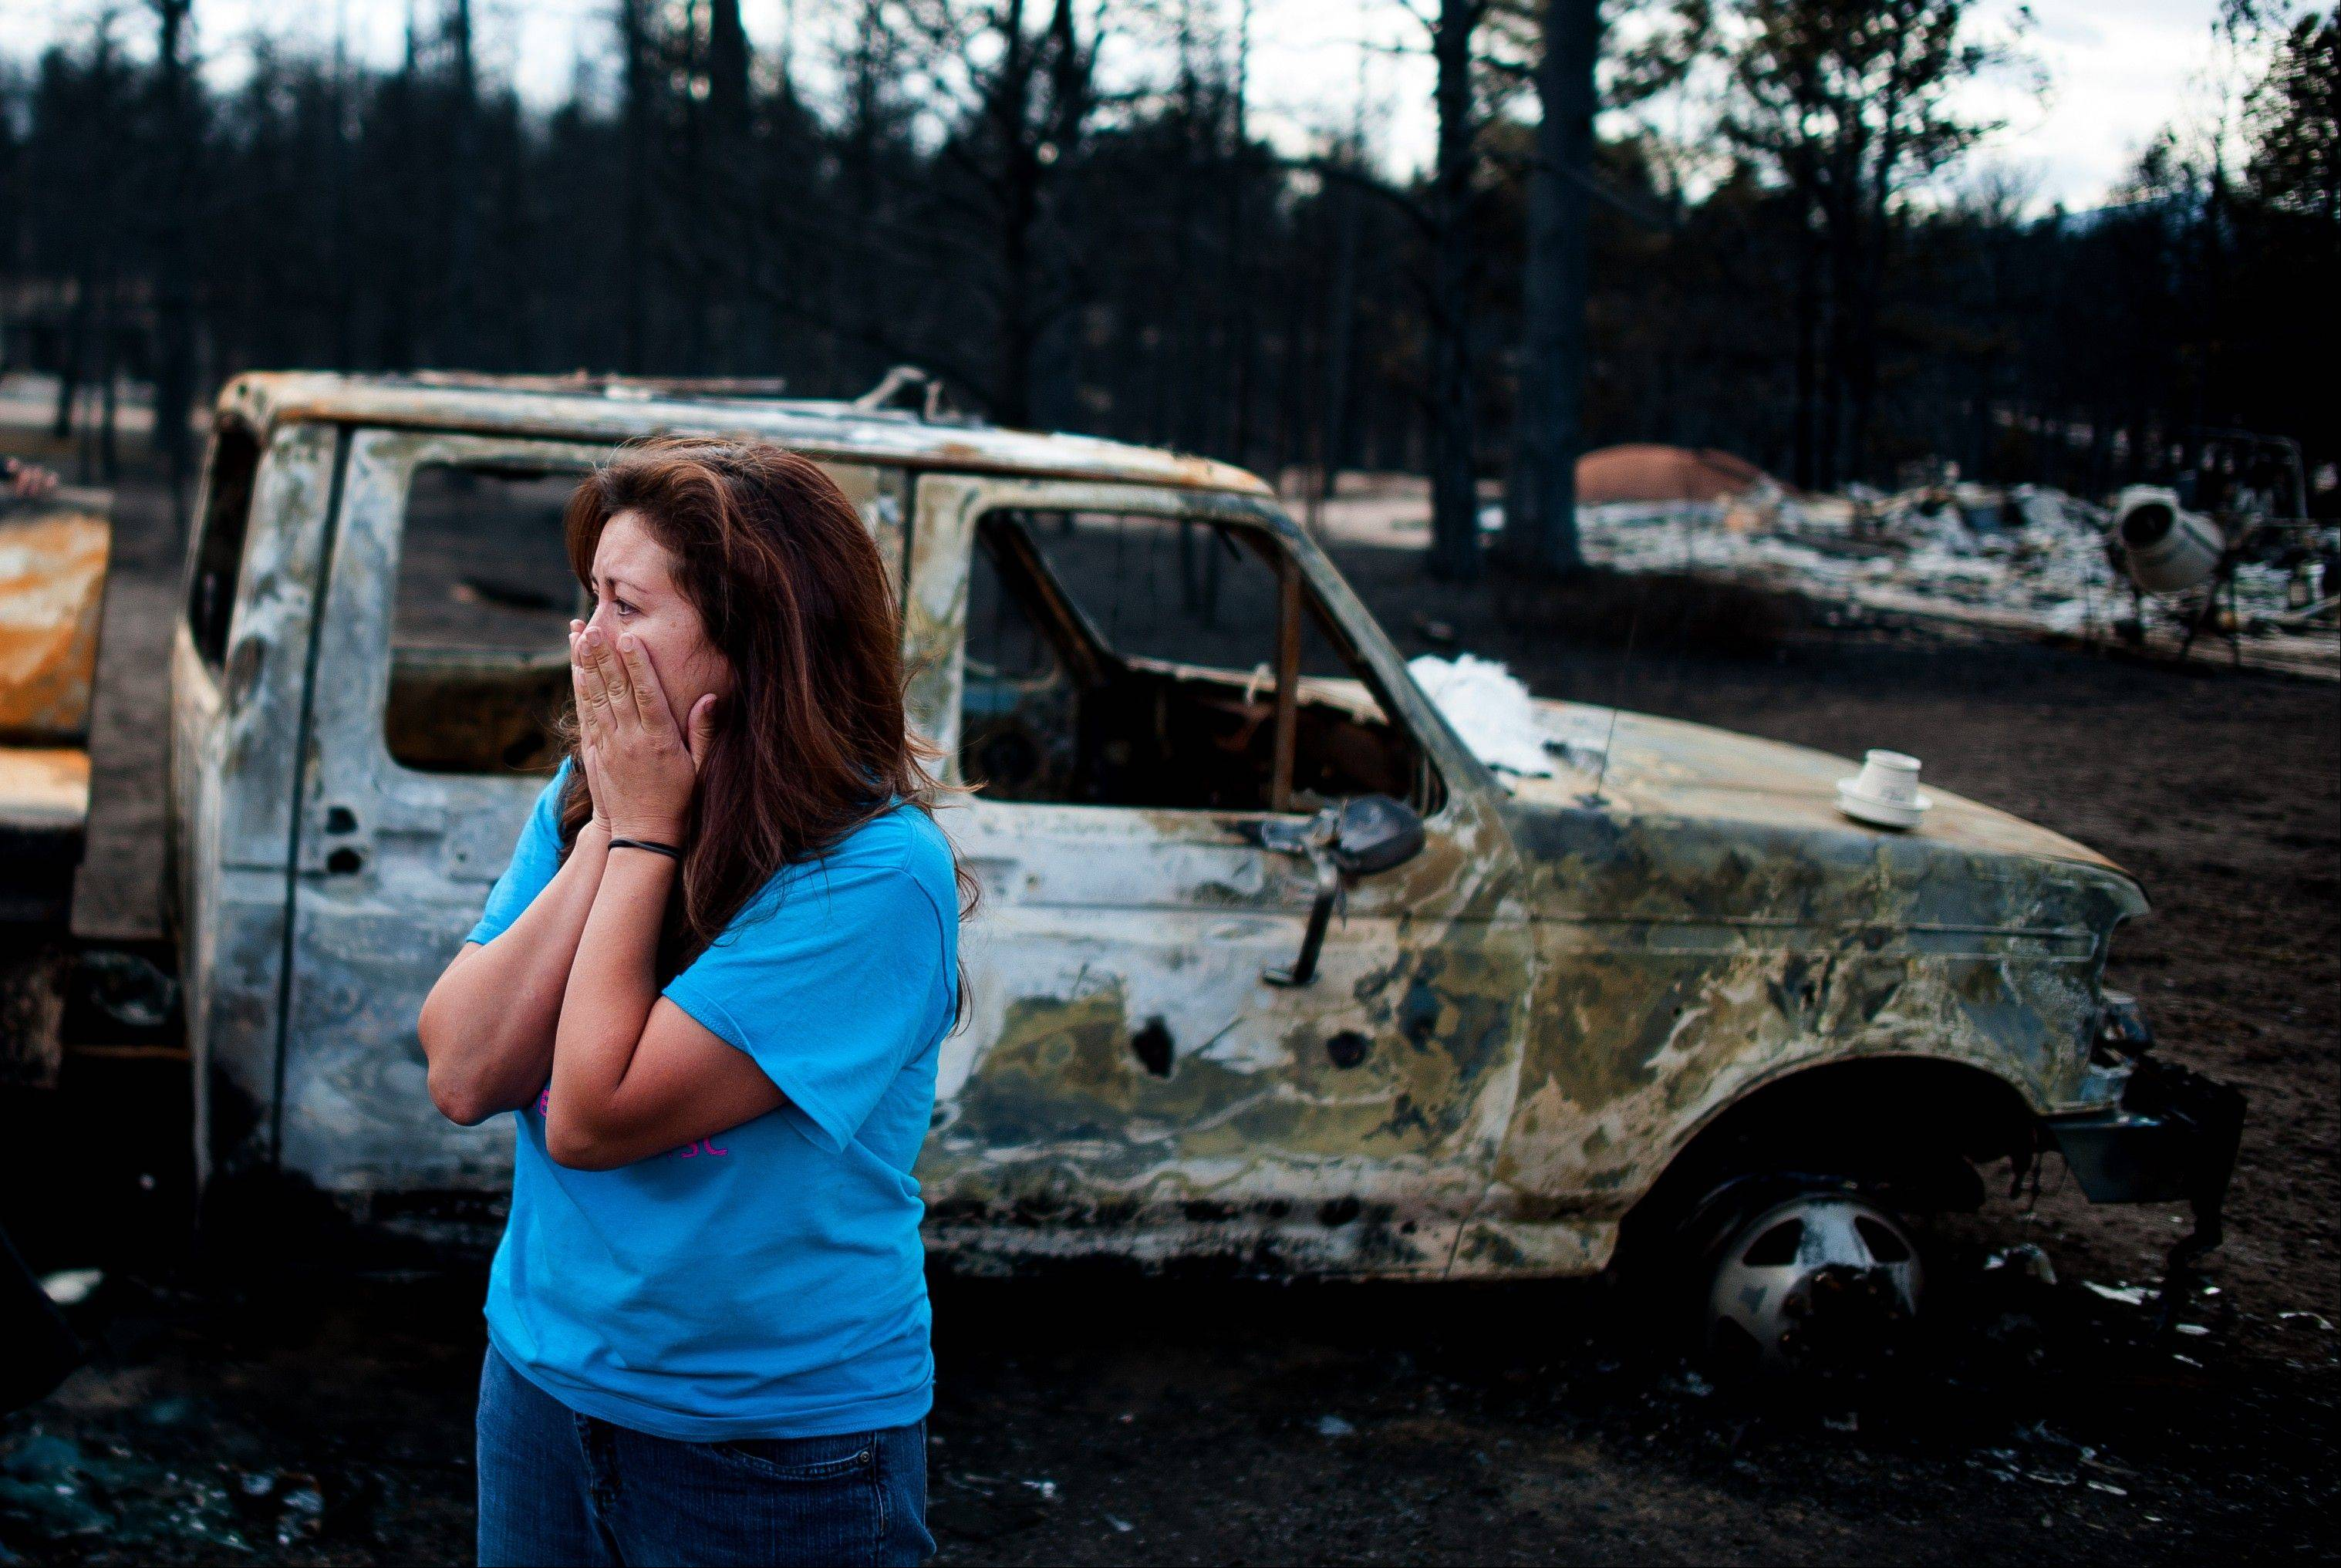 Bonnie Kruse reacts as she views her family's property that was in the path of the Black Forest Fire, Tuesday, June 18, 2013, in Colorado Springs, Colo. Of the six homes that Kruse and her family have in Black Forest, all but one was destroyed. The Black Forest Fire, the most destructive wildfire in Colorado history, has destroyed 502 homes and charred more than 22 square miles. It was 85 percent contained Tuesday.